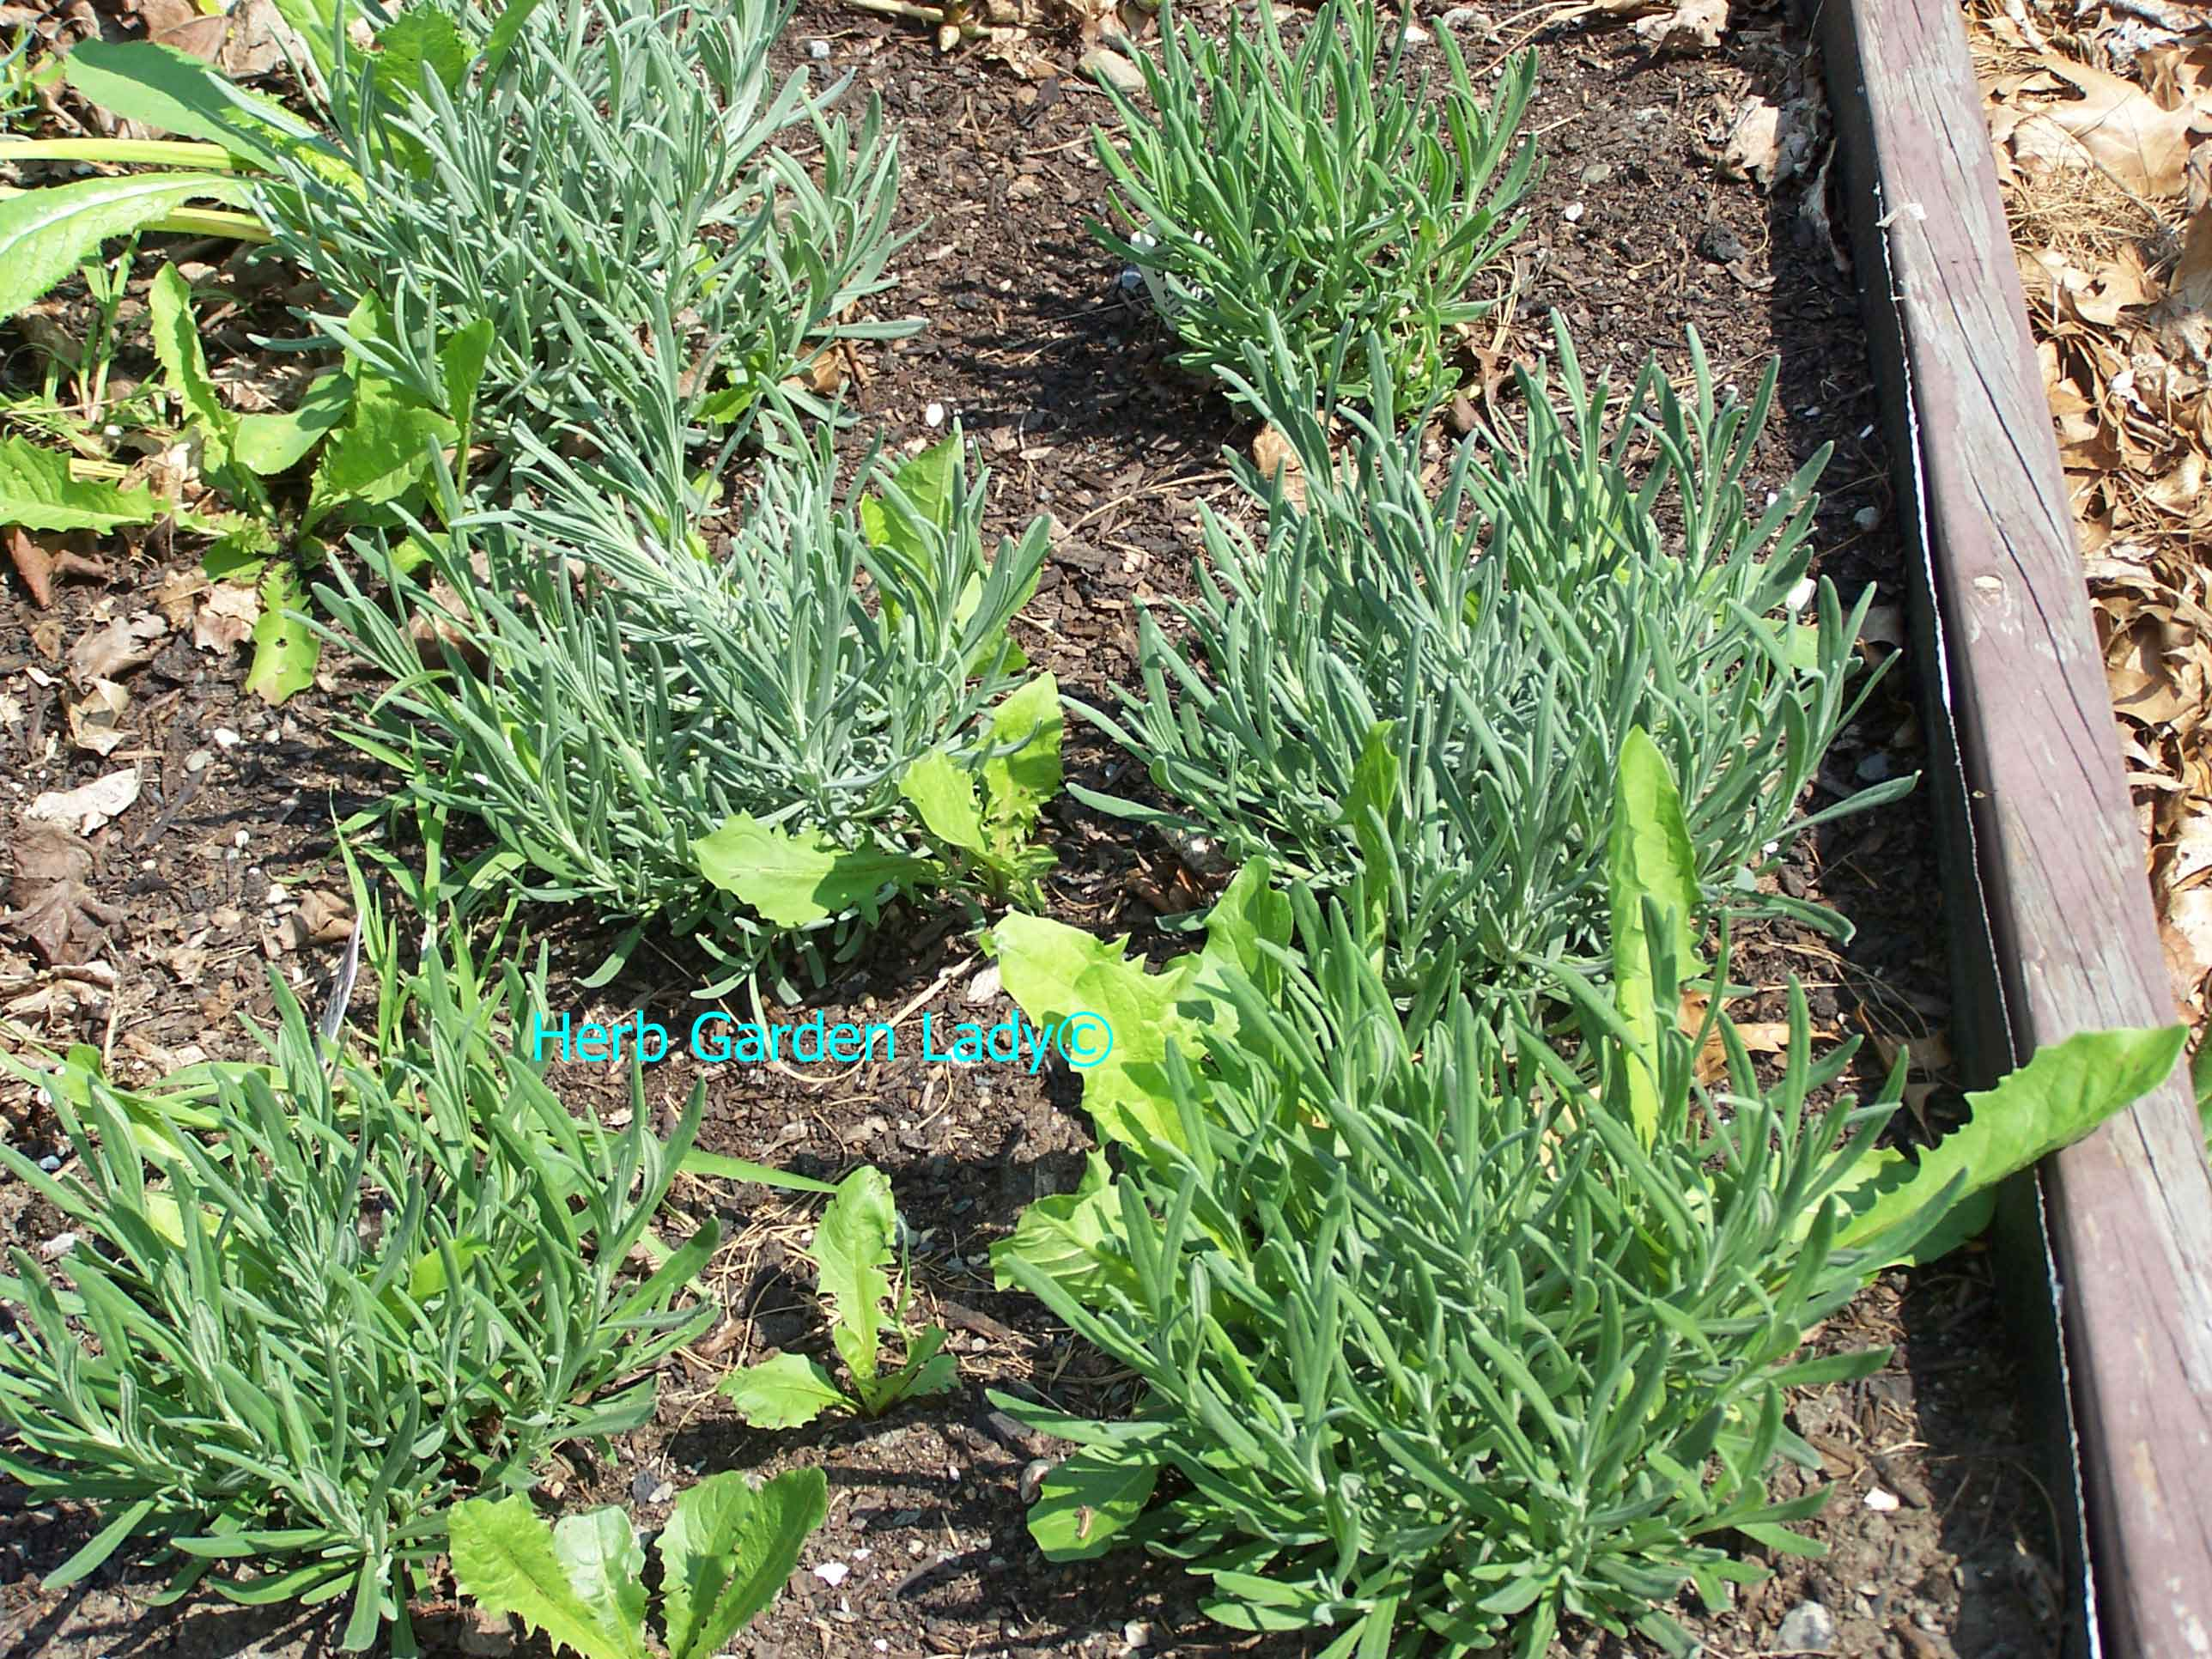 Square foot gardening beds allow excellent drainage